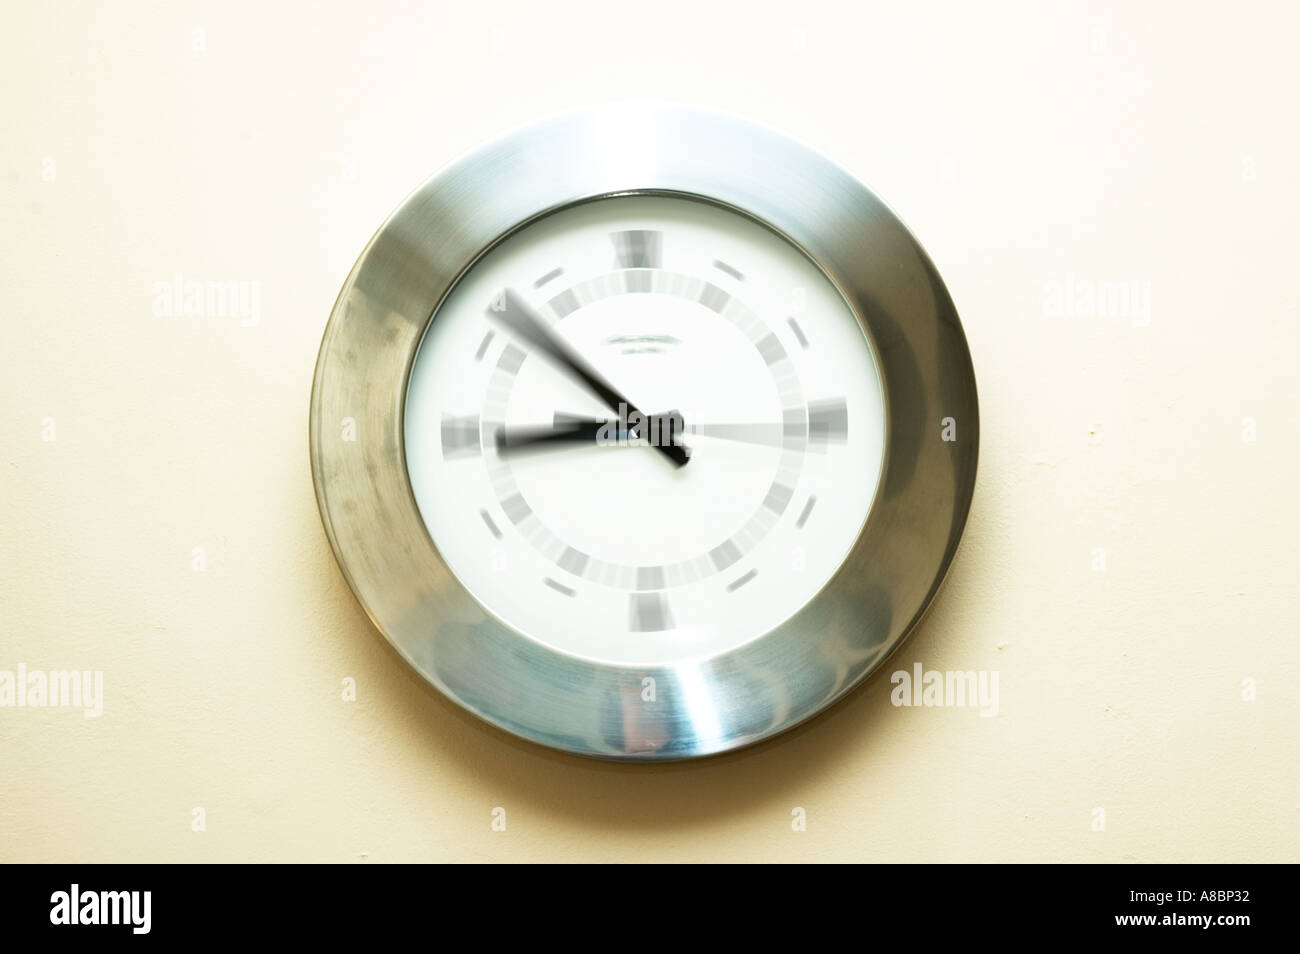 silver analogue clock on the wall with white background - Stock Image